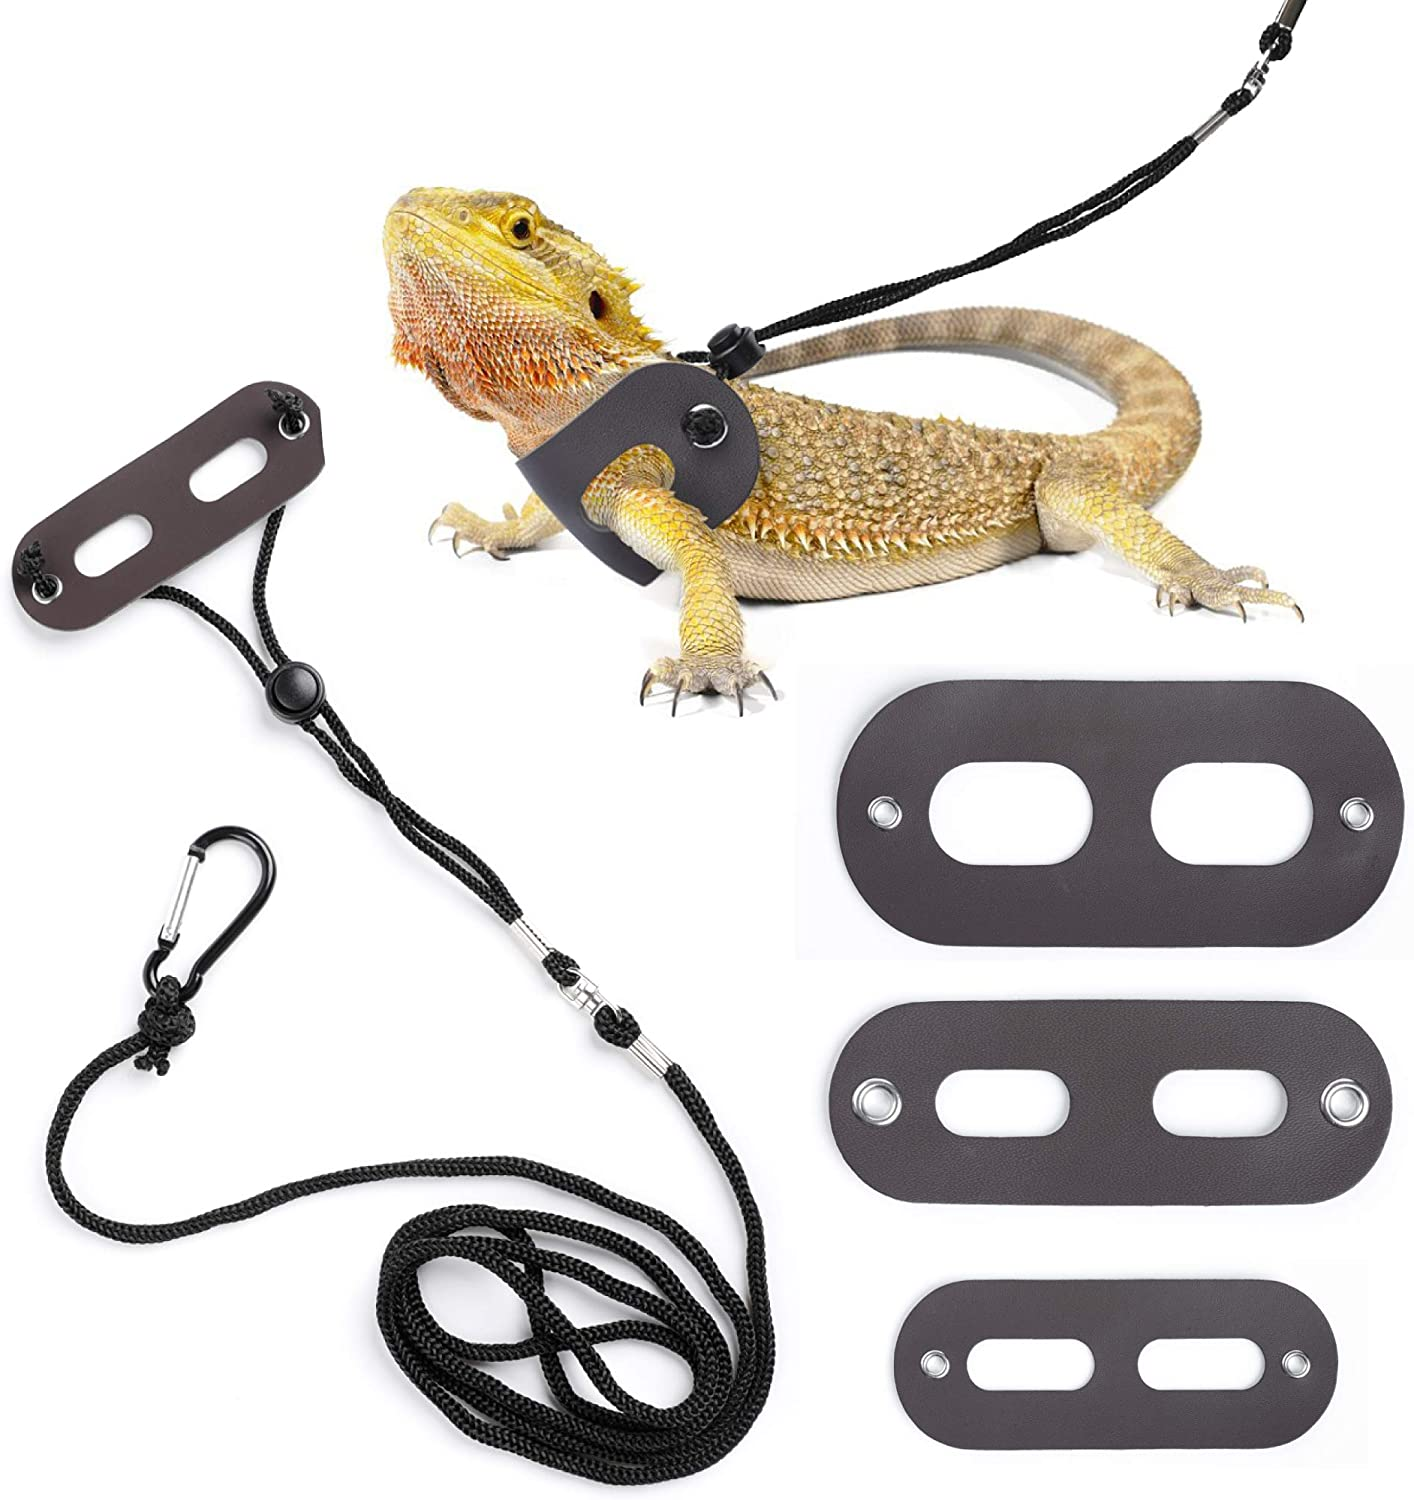 POLKASTORE Bearded Dragon Harness and Leash Adjustable S,M,L, 3 Pack Soft Leather Reptile Lizard Leash for Amphibians and Other Small Pet Animals